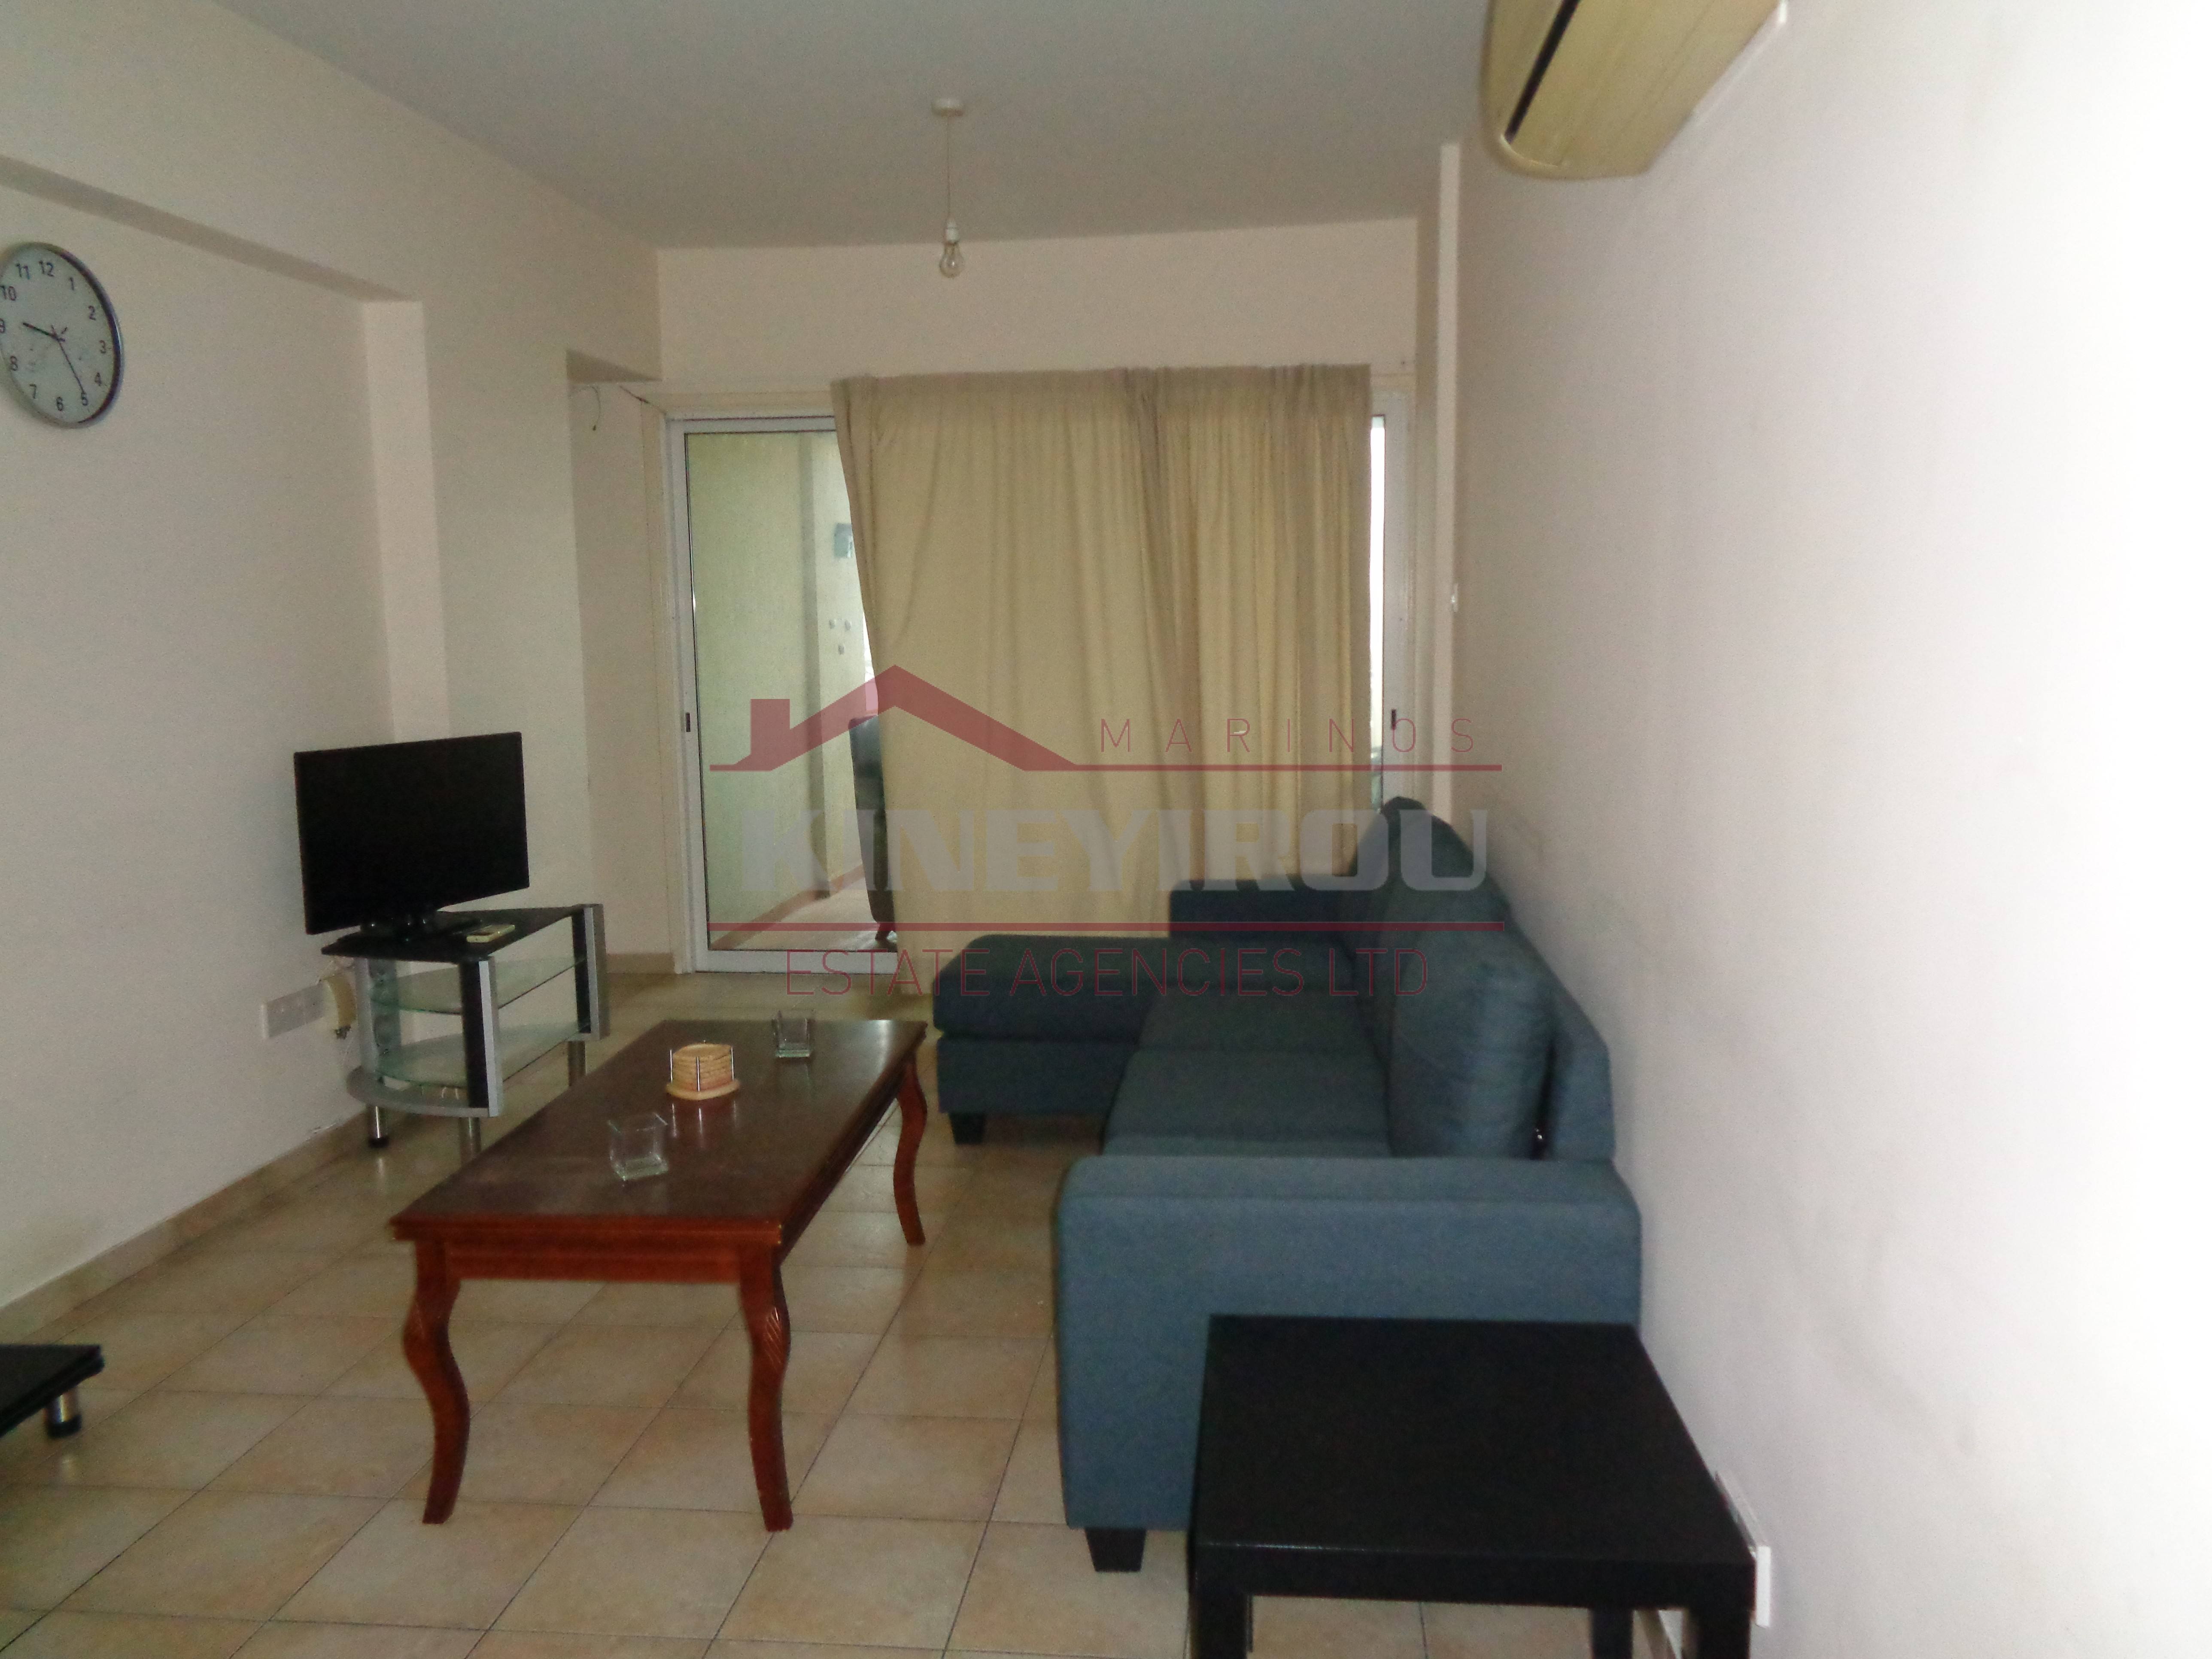 Wonderful 2 bedroom apartment for rent, in Makenzy, Larnaca